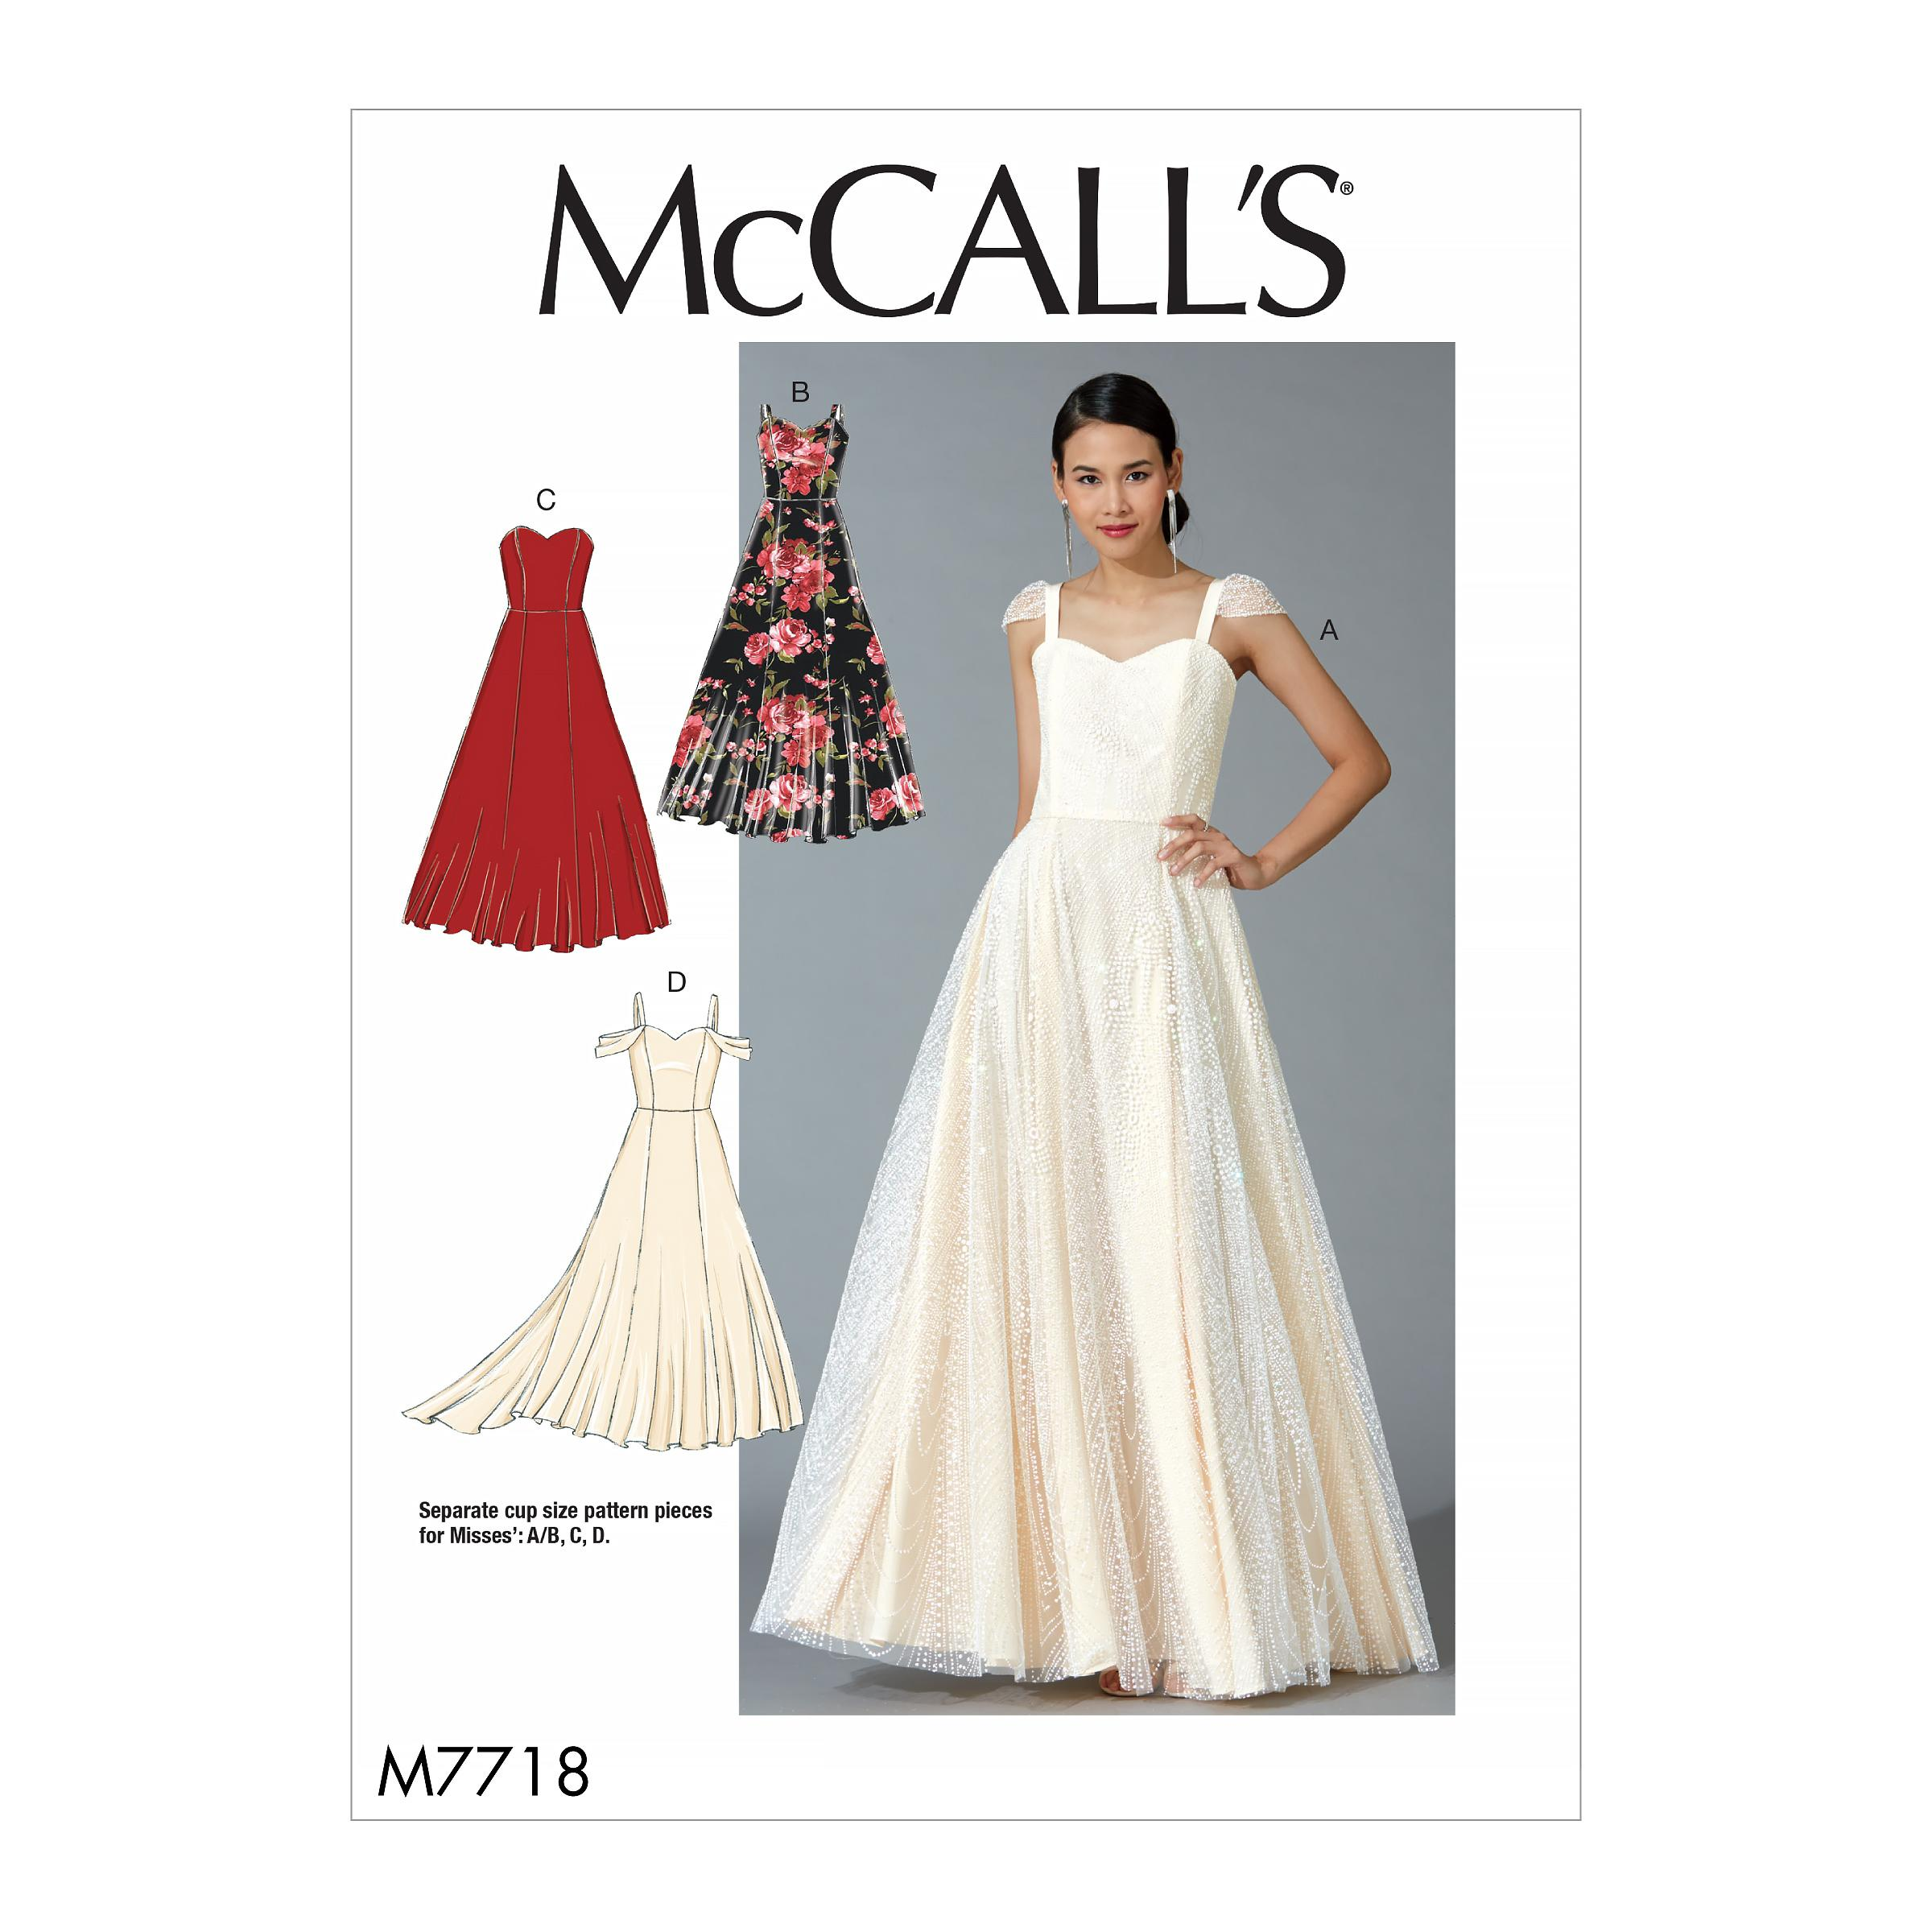 McCalls M7718 Misses Dresses, Misses Prom, Evening & Bridal